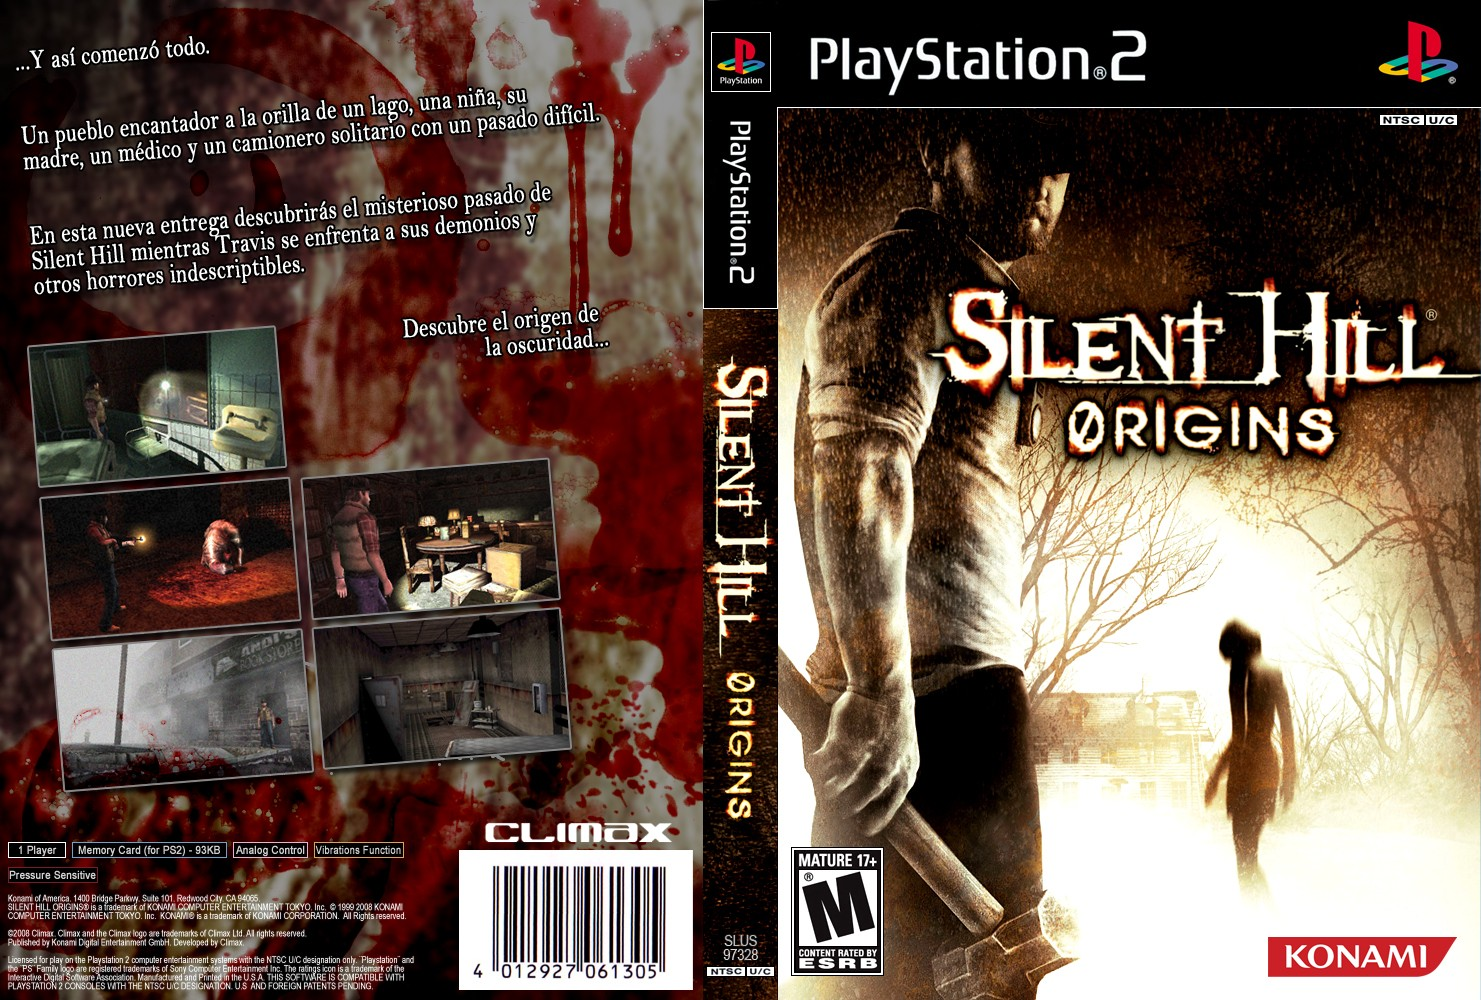 Silent Hill 2 Ps2 Iso Download Torrent Energymgmt S Blog